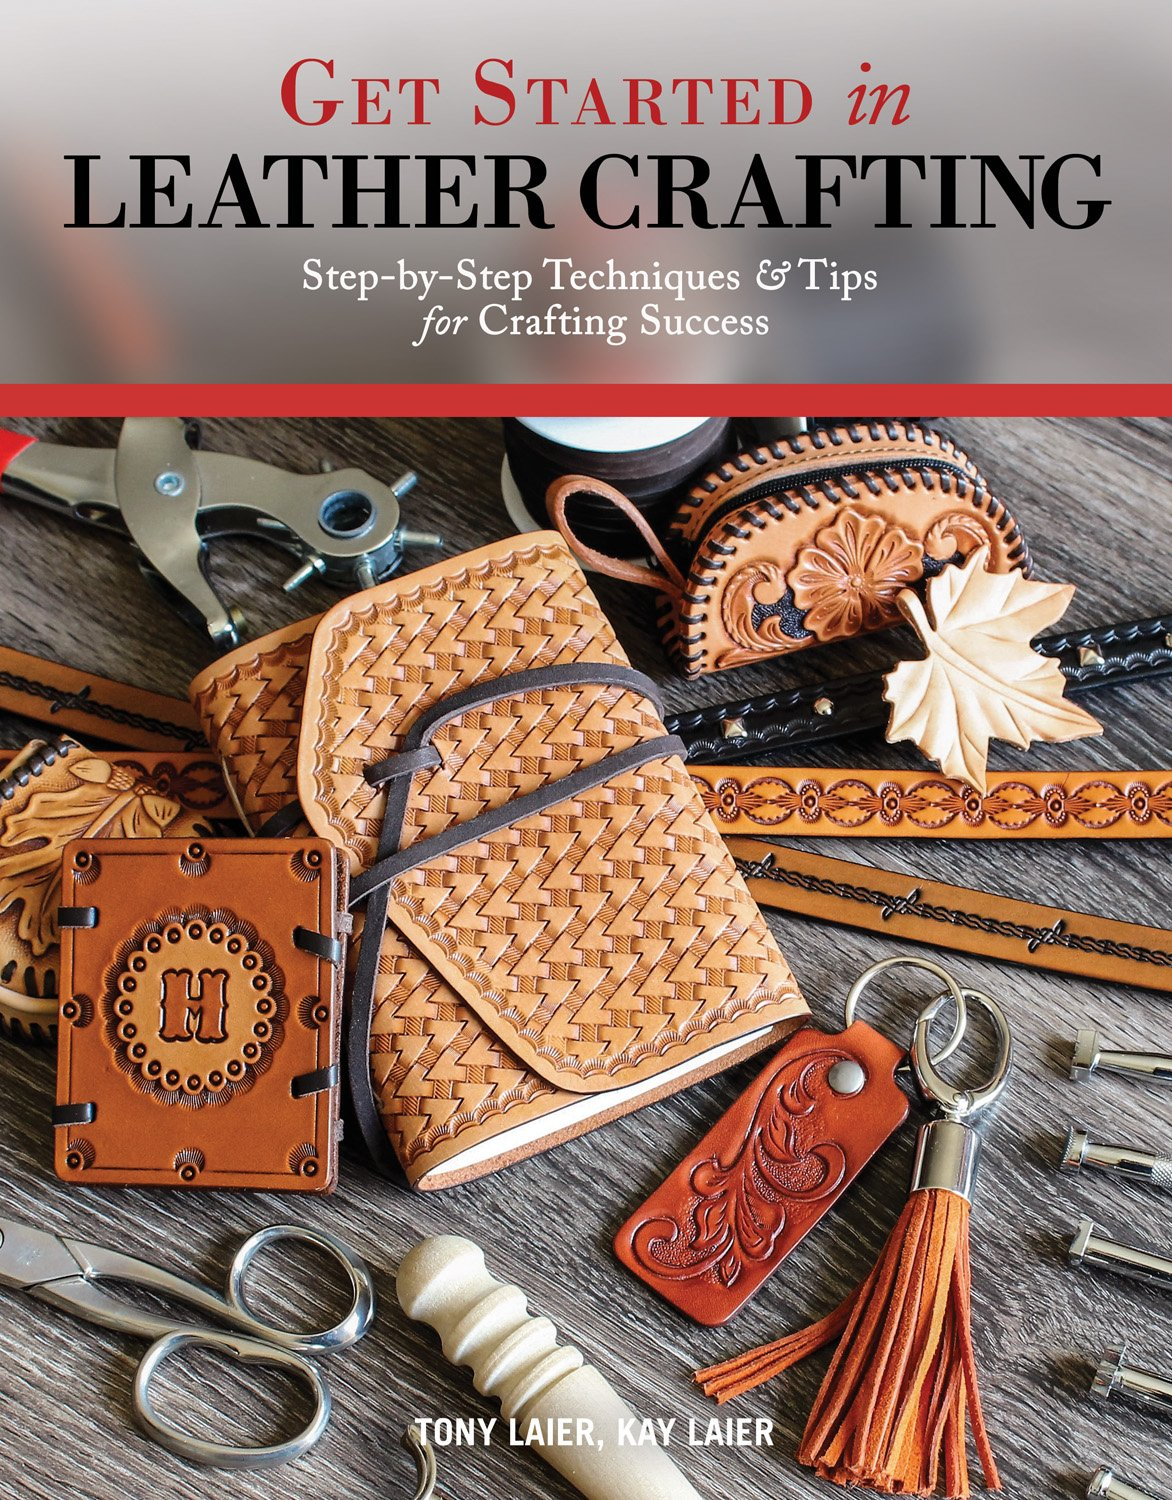 Get Started in Leather Crafting: Step-by-Step Techniques and Tips for Crafting Success (Design Originals) Beginner-Friendly Projects, Basics of Leather Preparation, Tools, Stamps, Embossing, & More